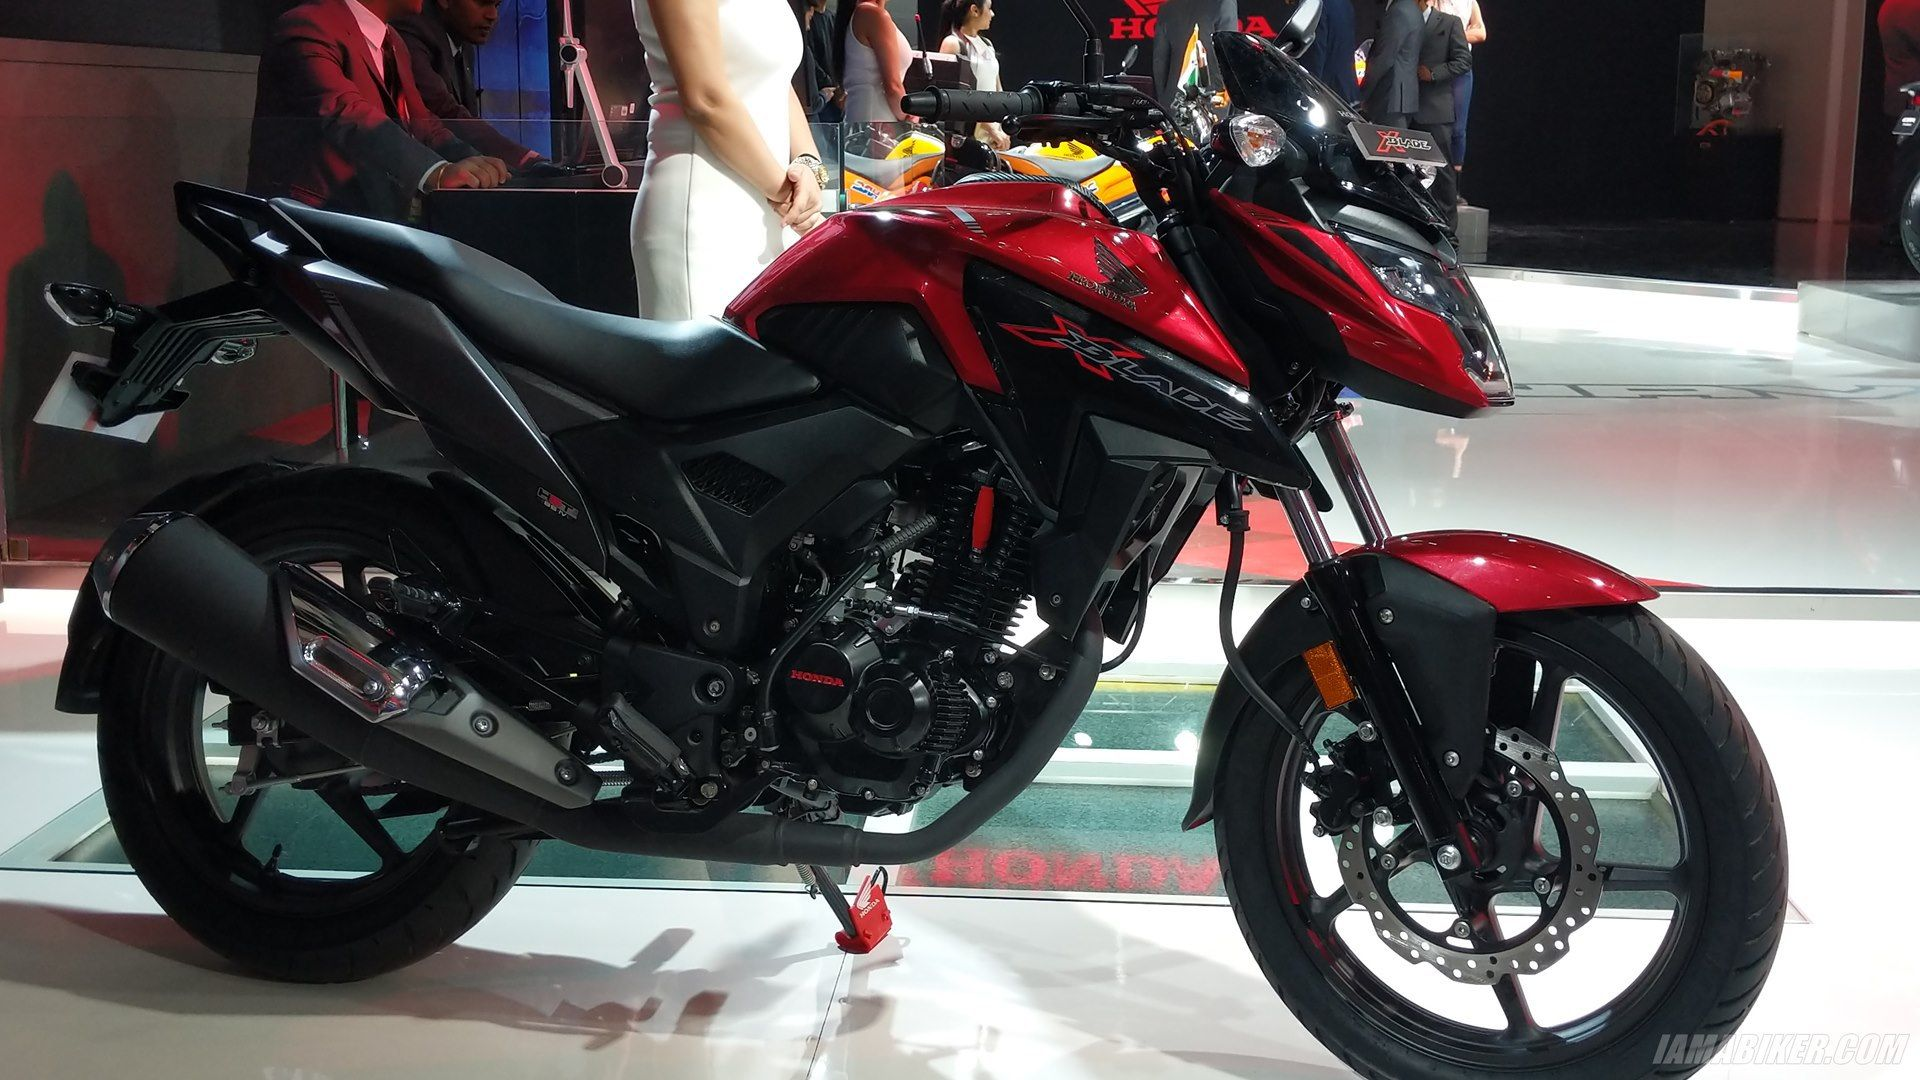 Honda Xblade Unveiled At Auto Expo 2018 Honda Motorcycle News Motorcycle